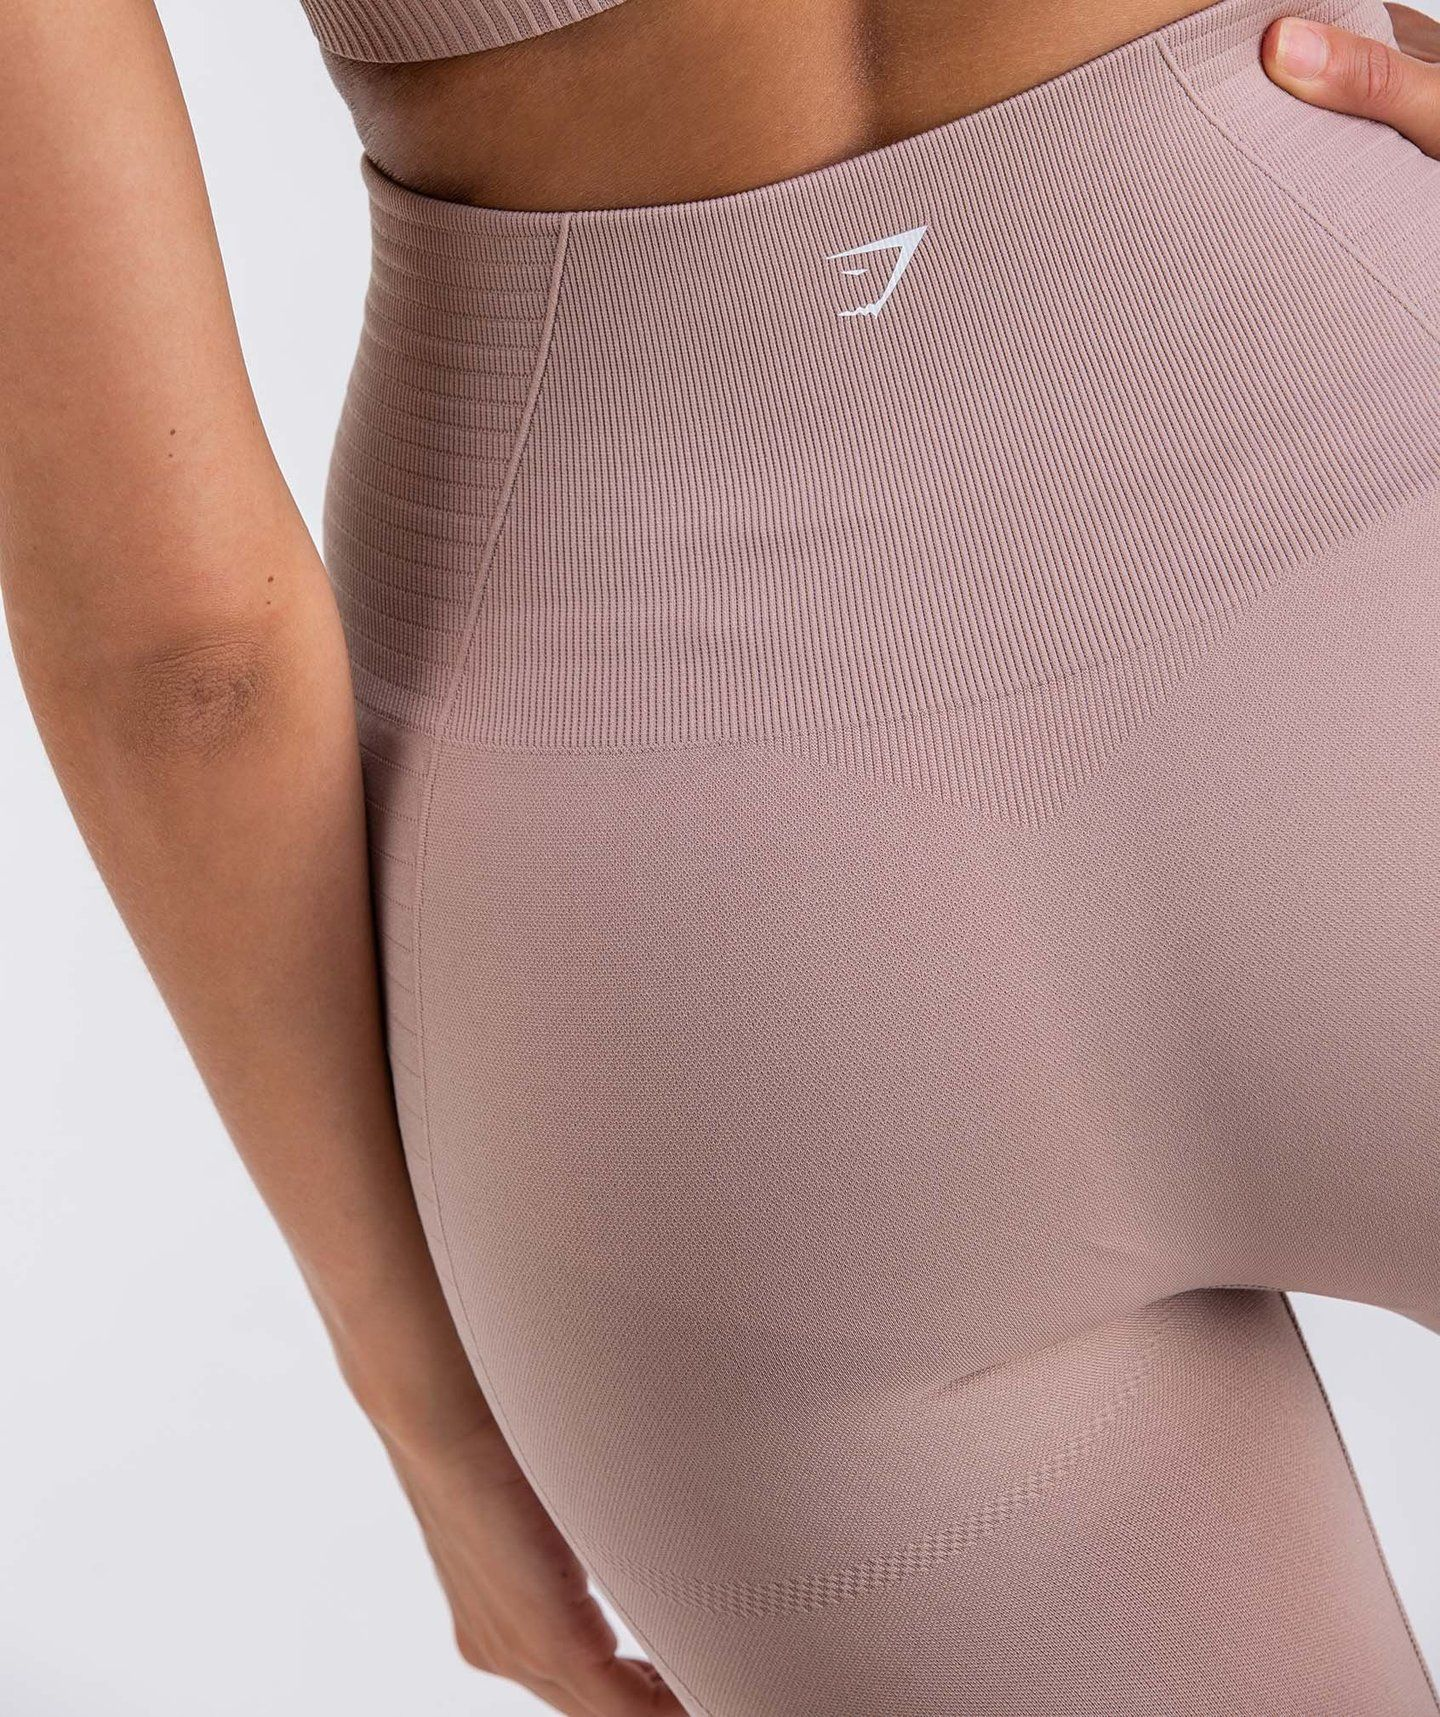 e5f4657fb7237 Gymshark Energy Seamless High Waisted Leggings - Taupe | Leggings ...